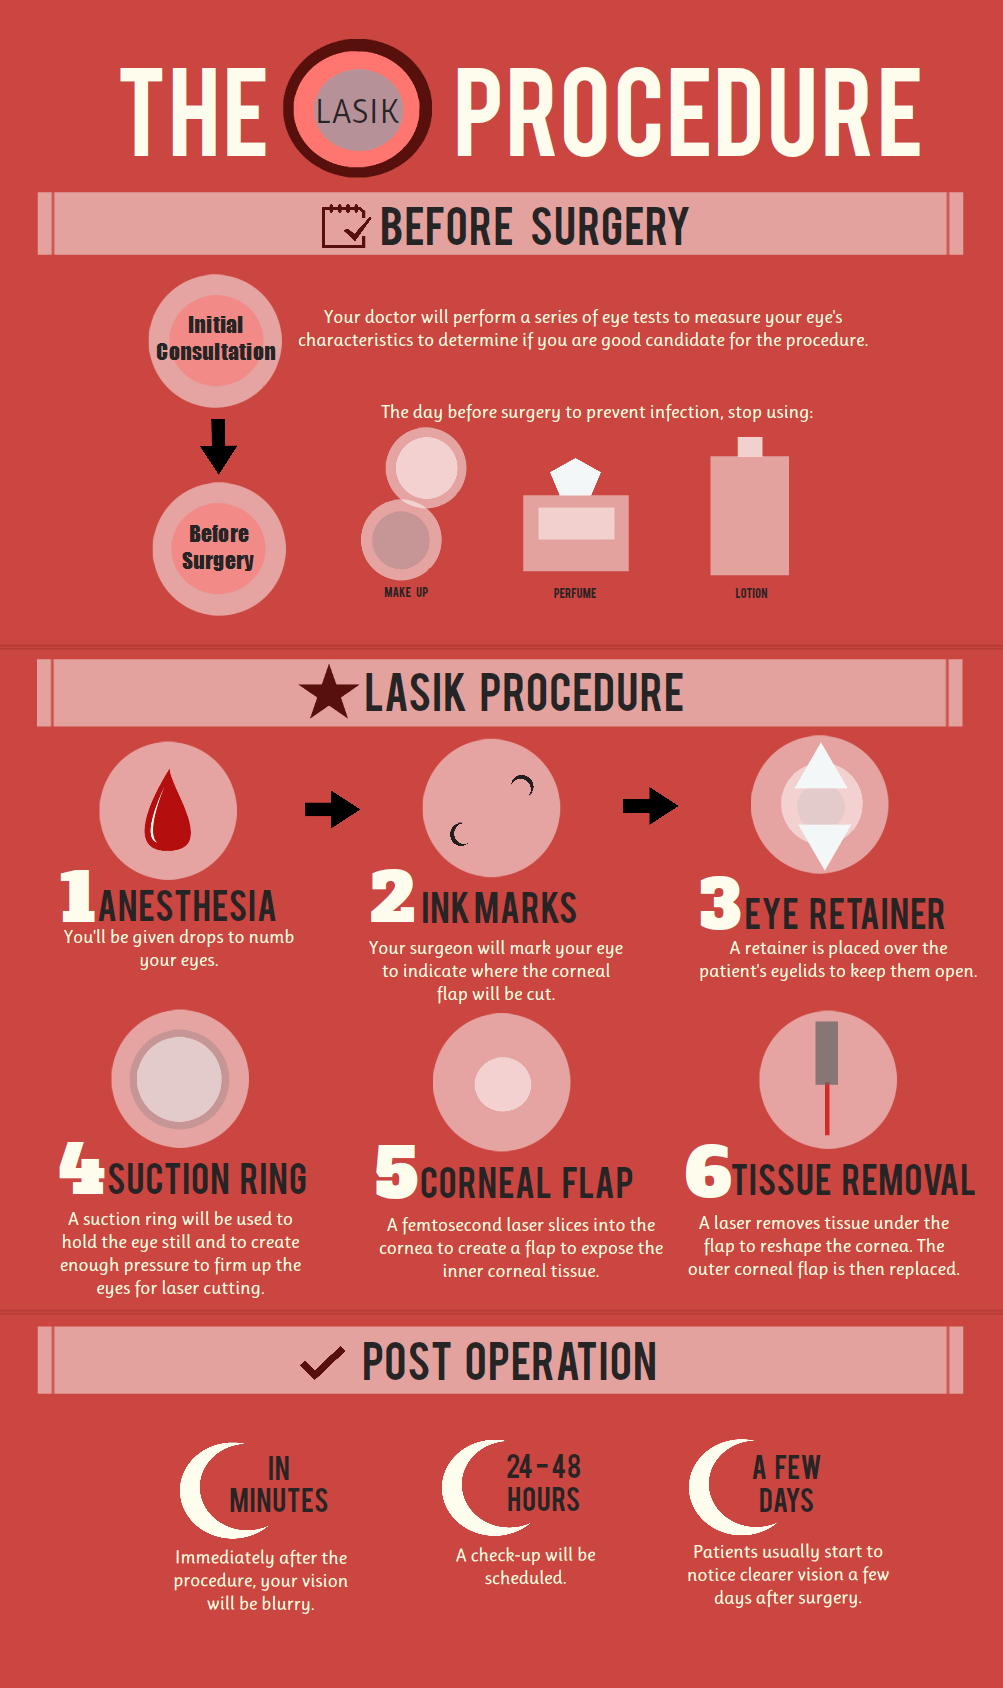 lasik-procedure_50cfa073e4d3d